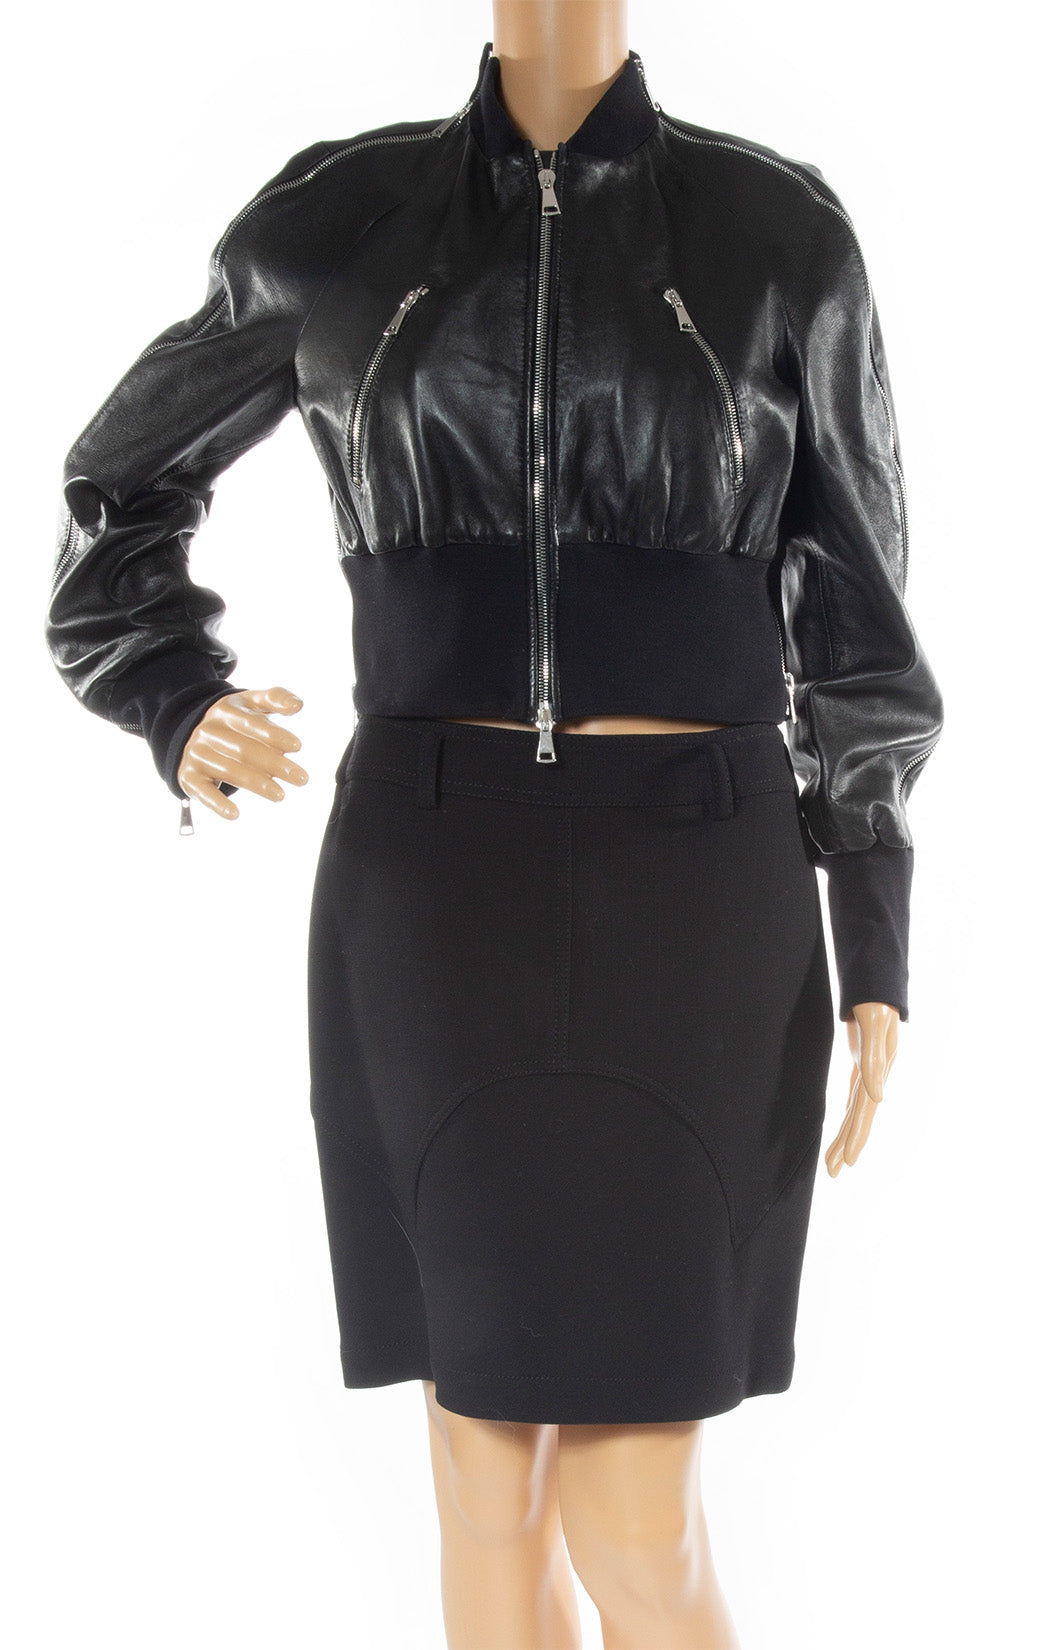 Closeup of LENA LUMELSKY Leather jacket Size: 38 FR (comparable to US 4)